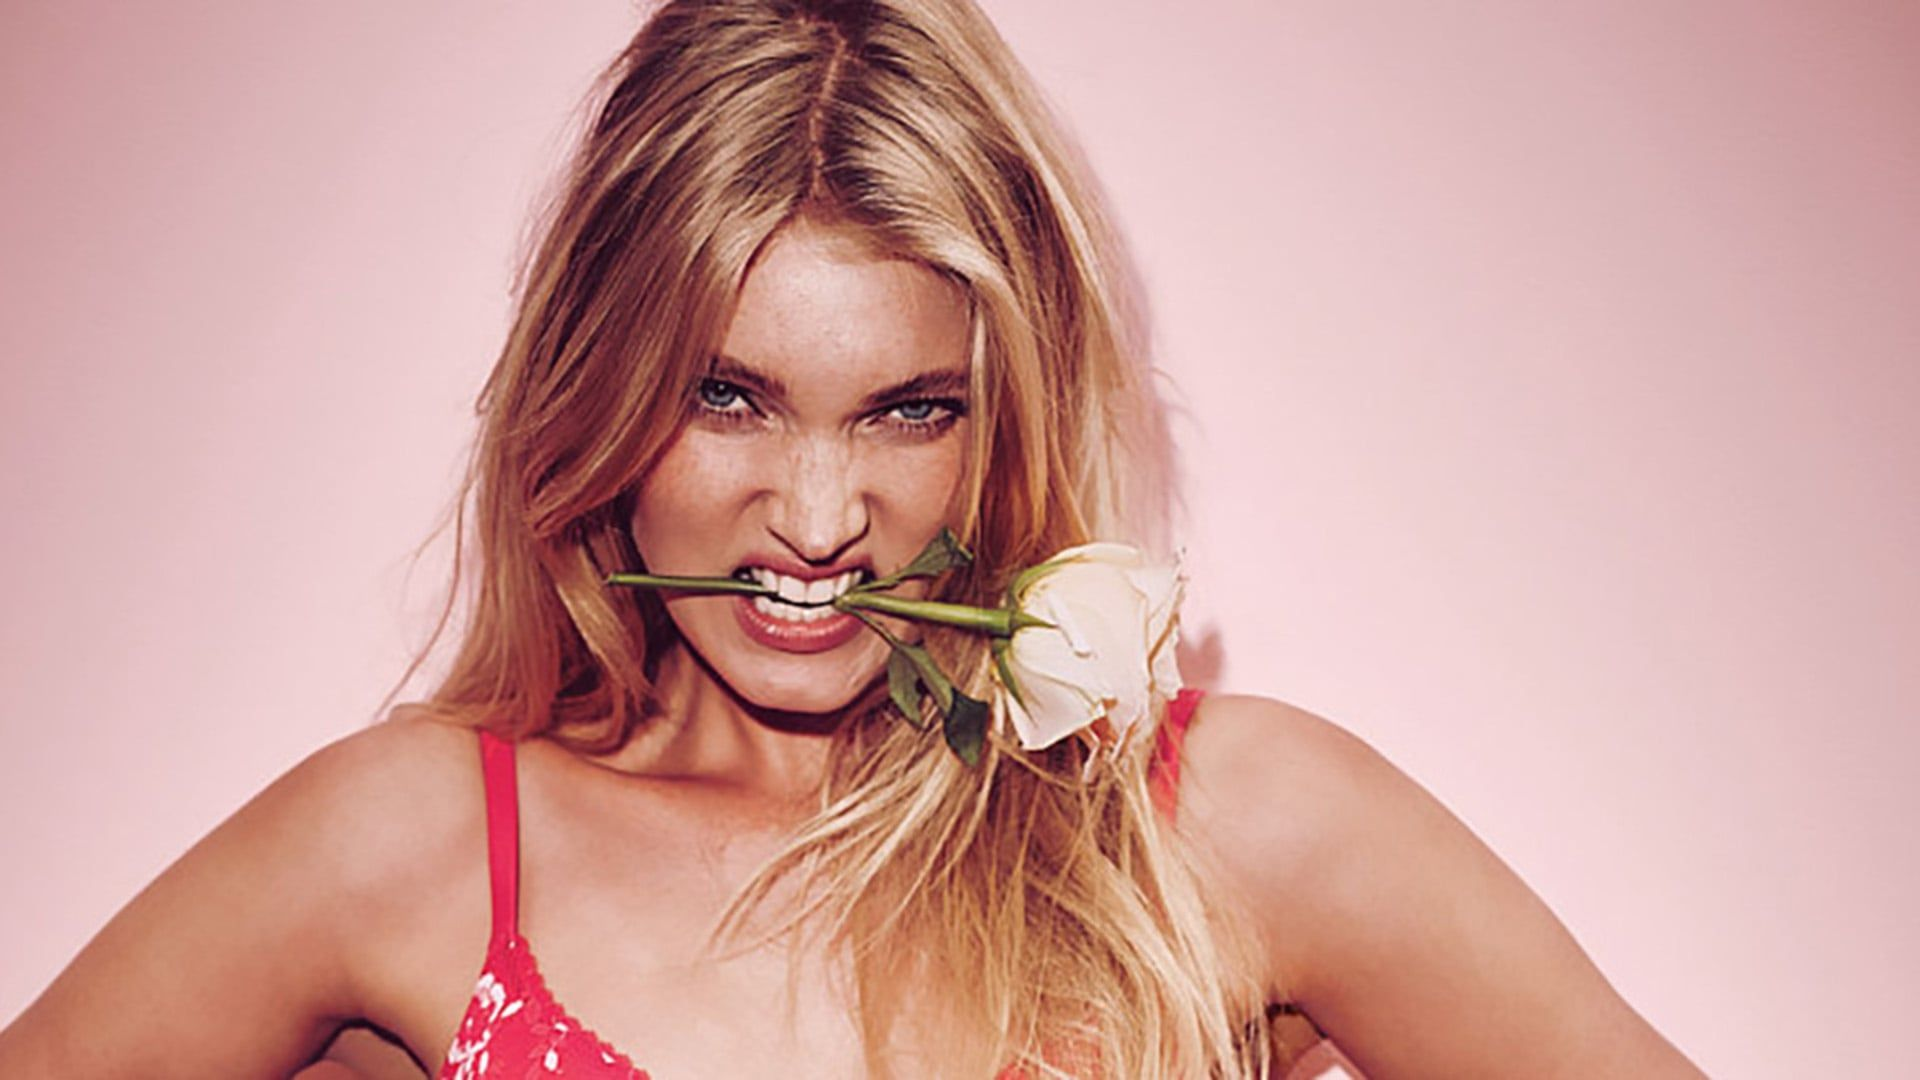 Elsa Hosk HD wallpapers with High Quality and Resolution also 1920x1080